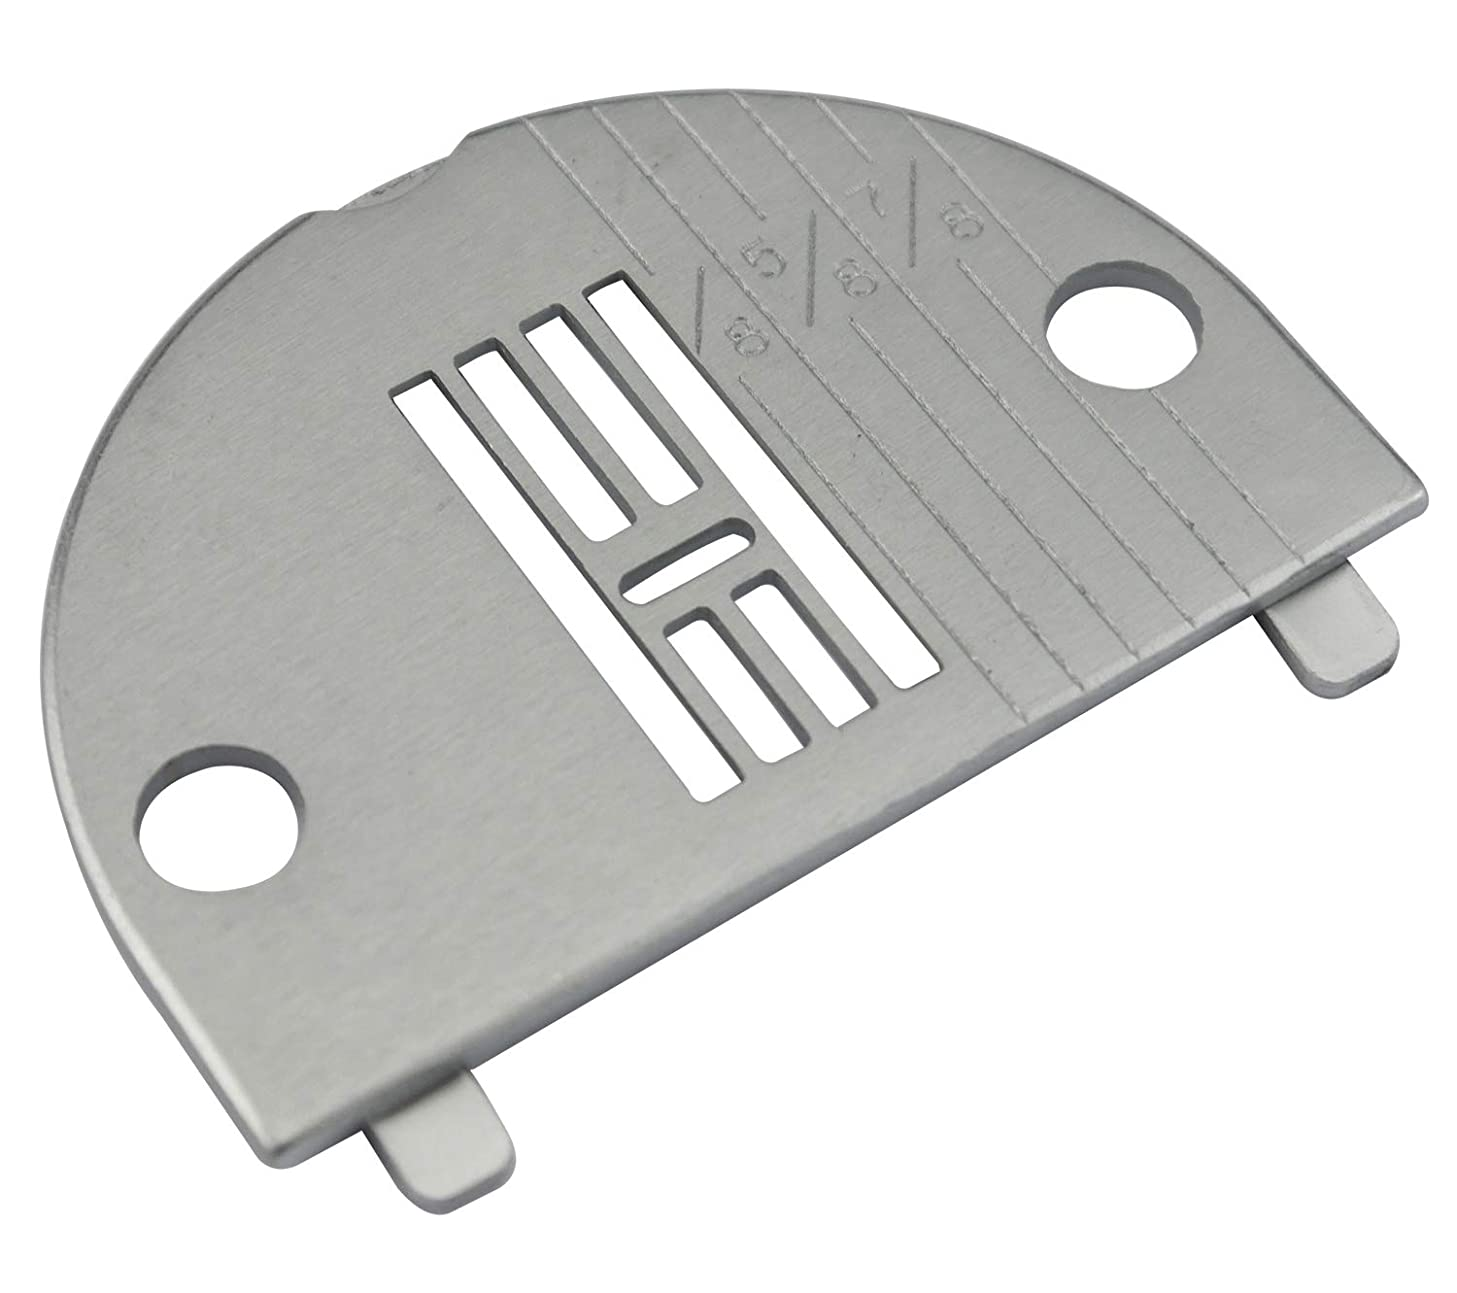 DREAMSTITCH NZ13LG Zig Zag Needle Plate for Brother Sewing Machine - Needle plate-NZ-13LG